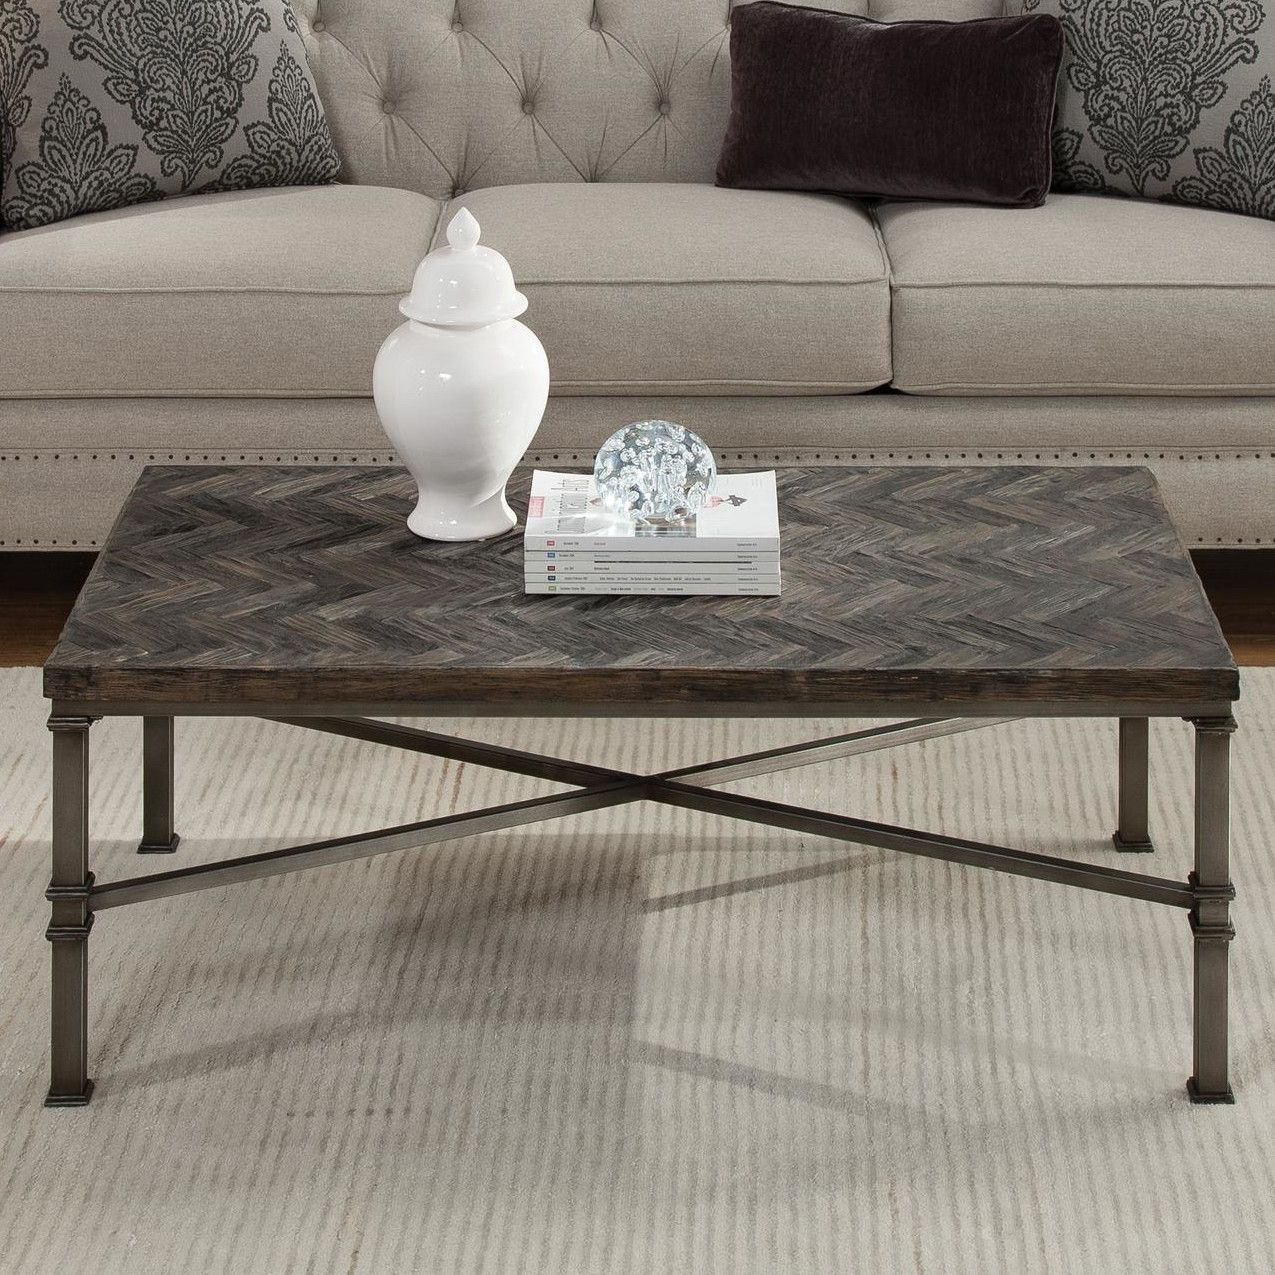 Riverside Furniture Bridlewood Coffee Table Build A Coffee Table Coffee Table Coffee Table Joss And Main [ 1275 x 1275 Pixel ]